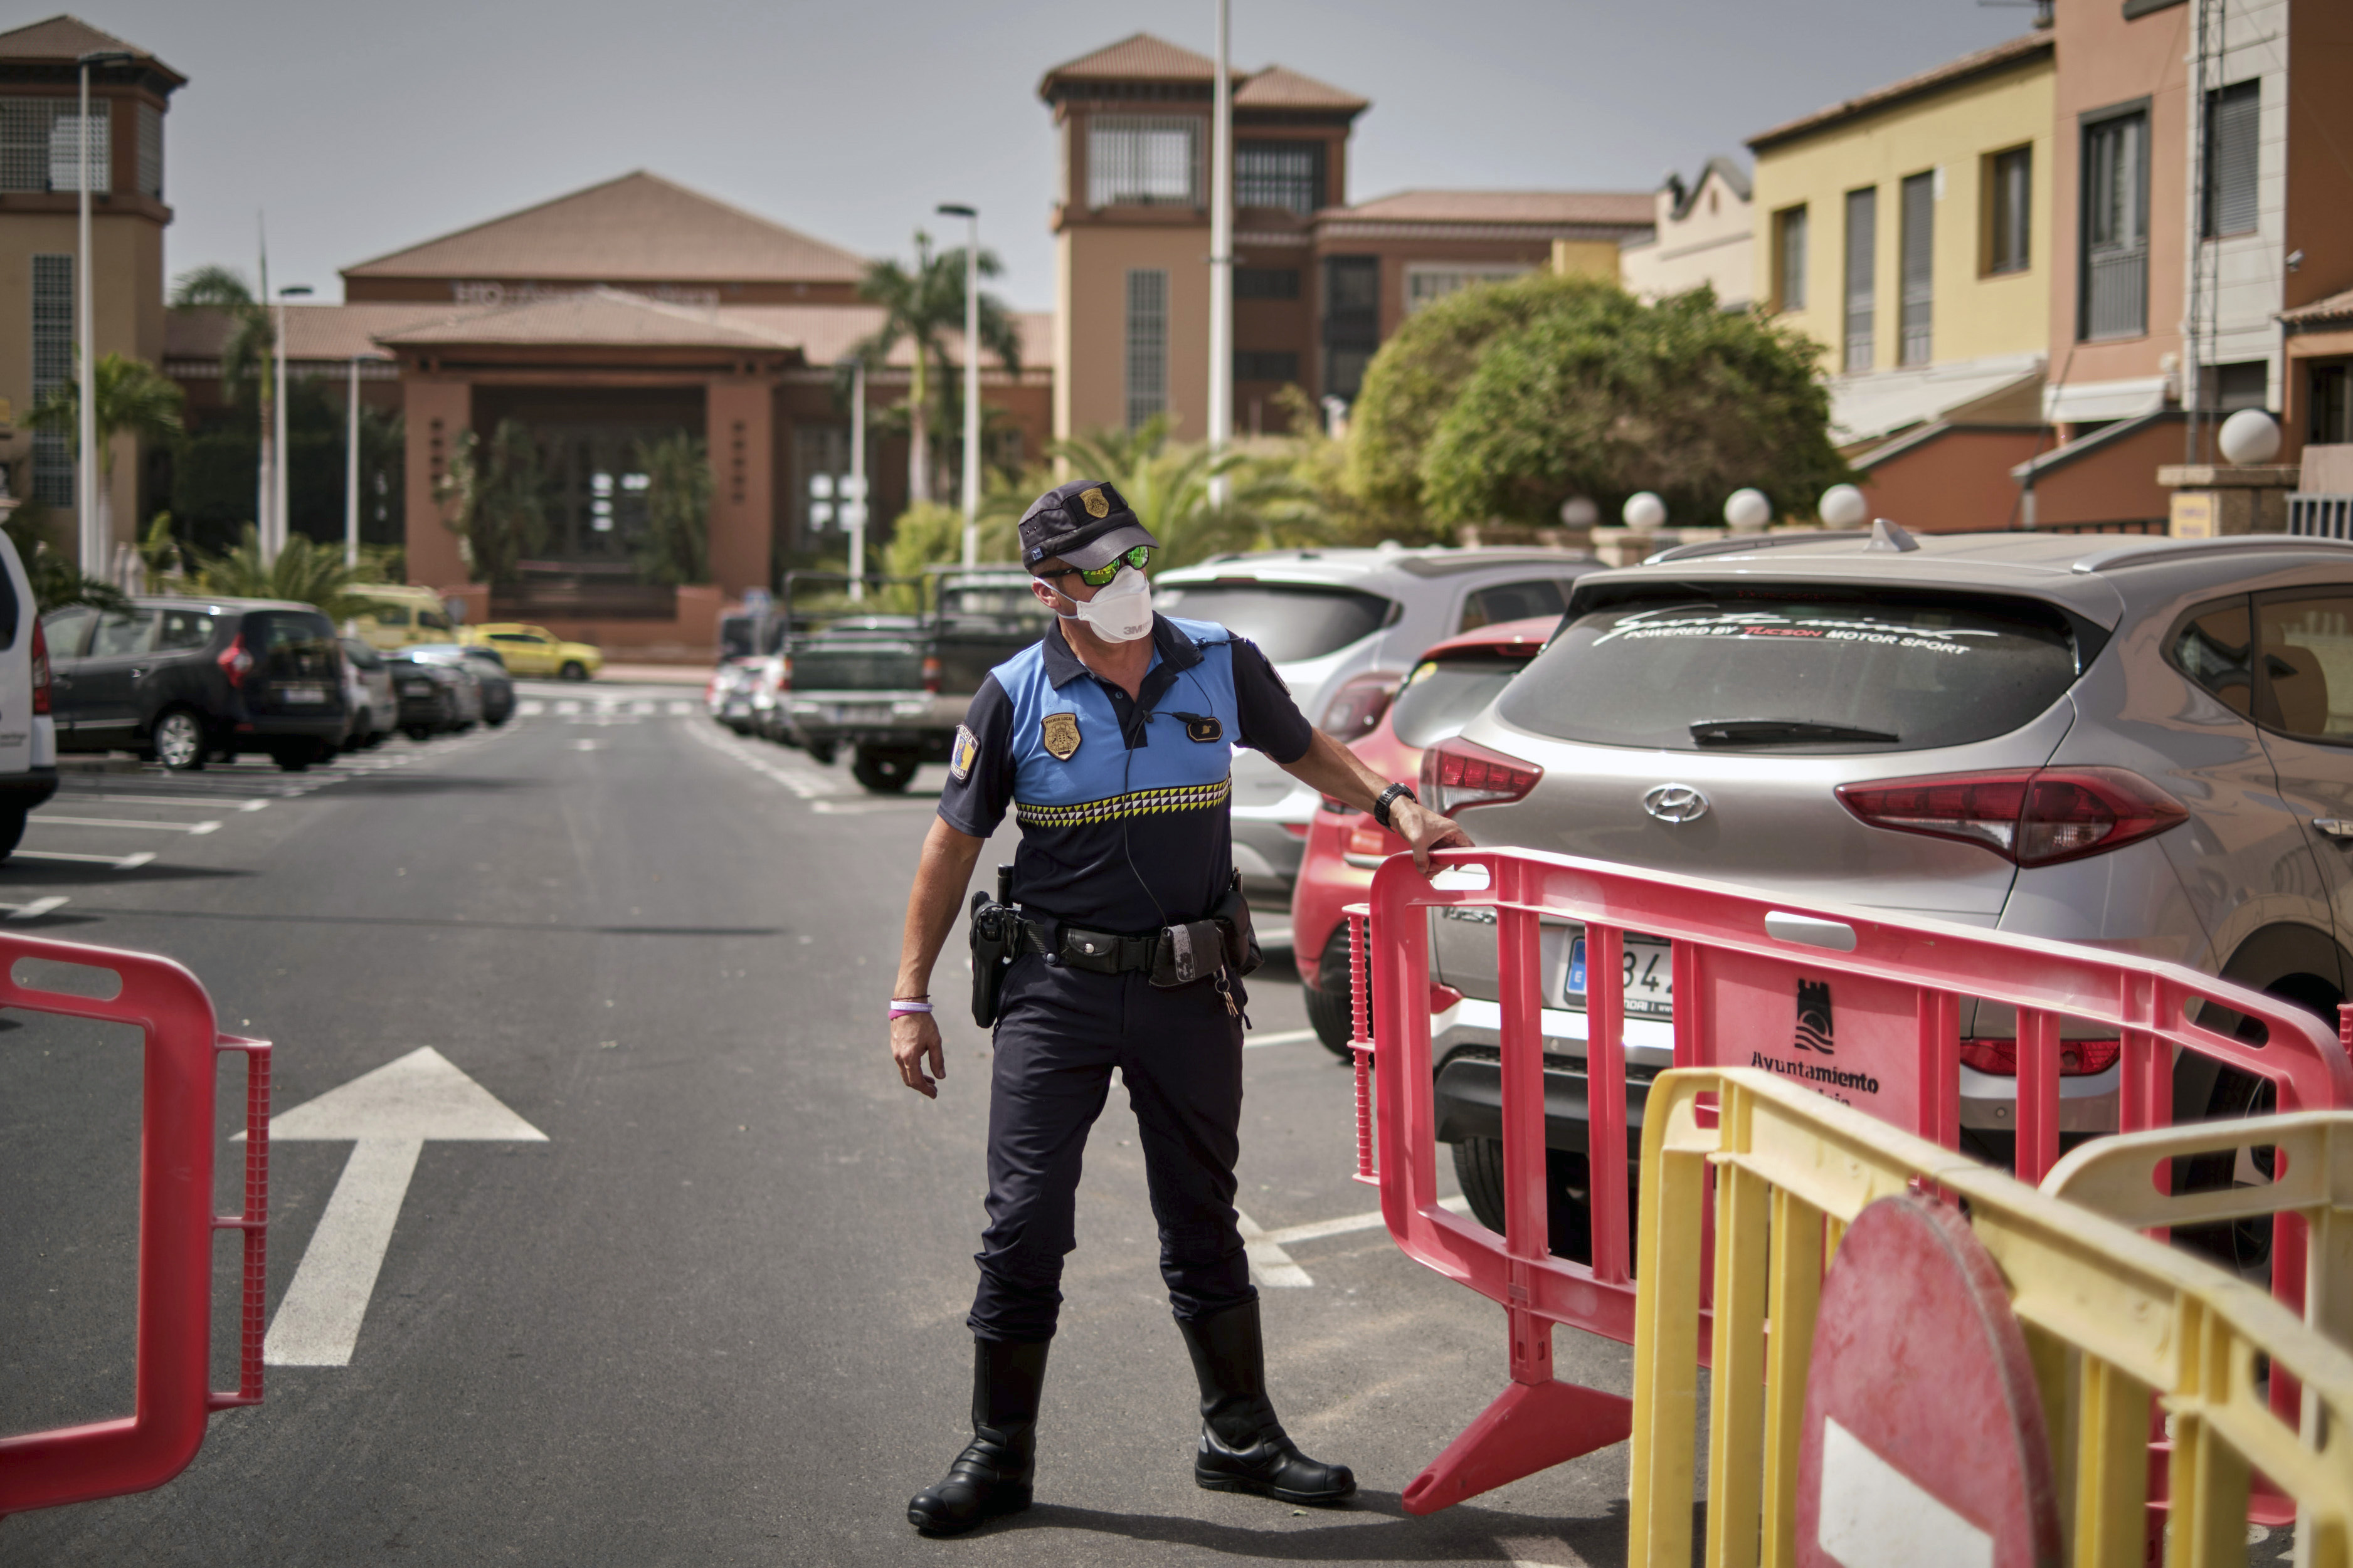 A Spanish police officer sets up a barrier blocking the access to the H10 Costa Adeje Palace hotel in Tenerife, Canary Island, Spain, on Tuesday, February 25.